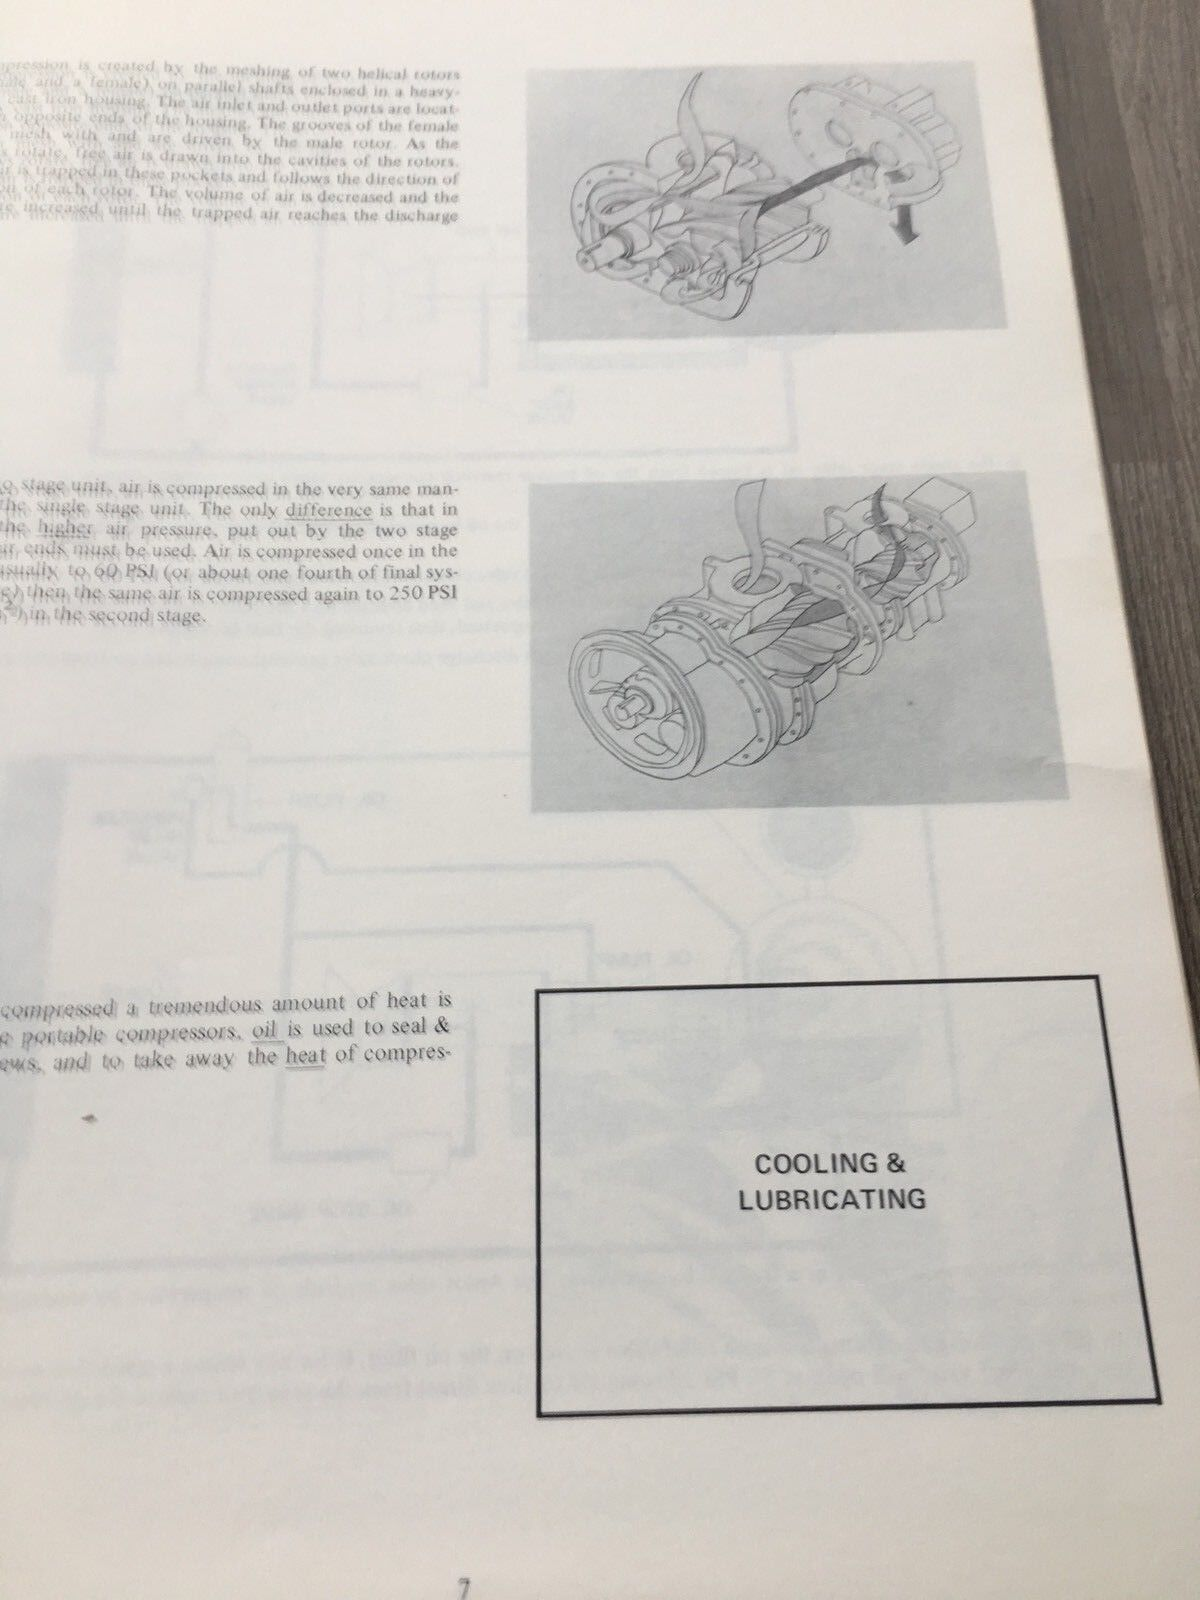 3 of 6 Ingersoll Rand Large Air Compressor Operation & Maintenance Manual  Inc Vat 4 of 6 Ingersoll Rand ...